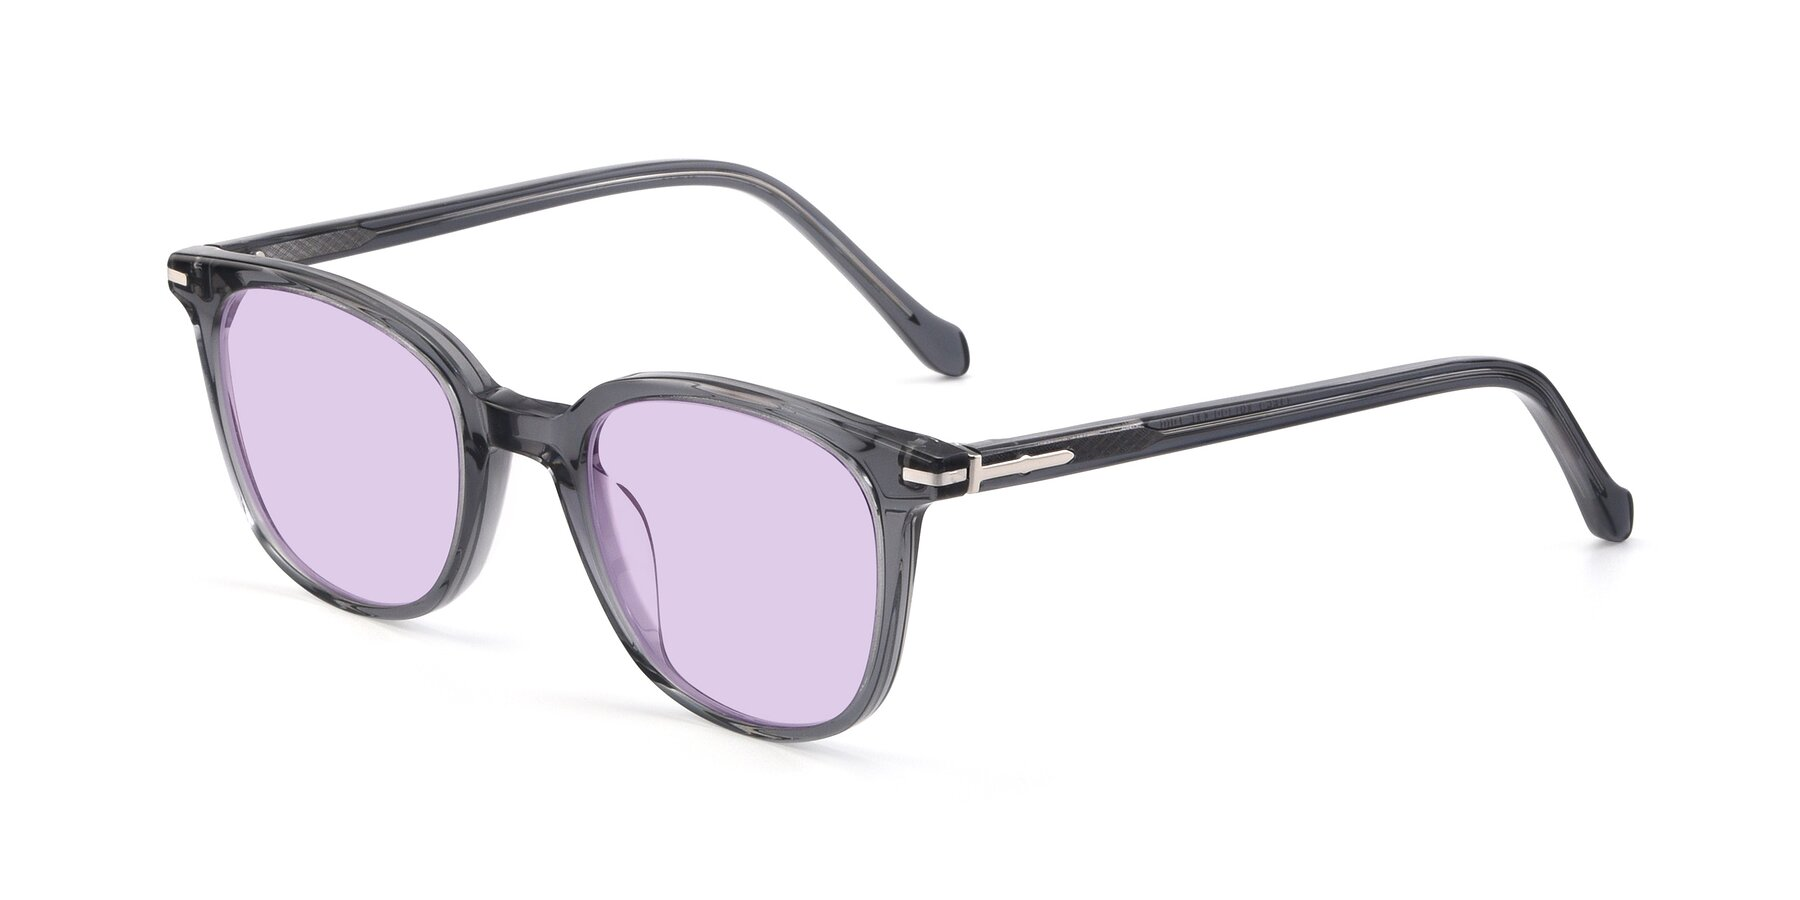 Angle of 17562 in Transparent Grey with Light Purple Tinted Lenses